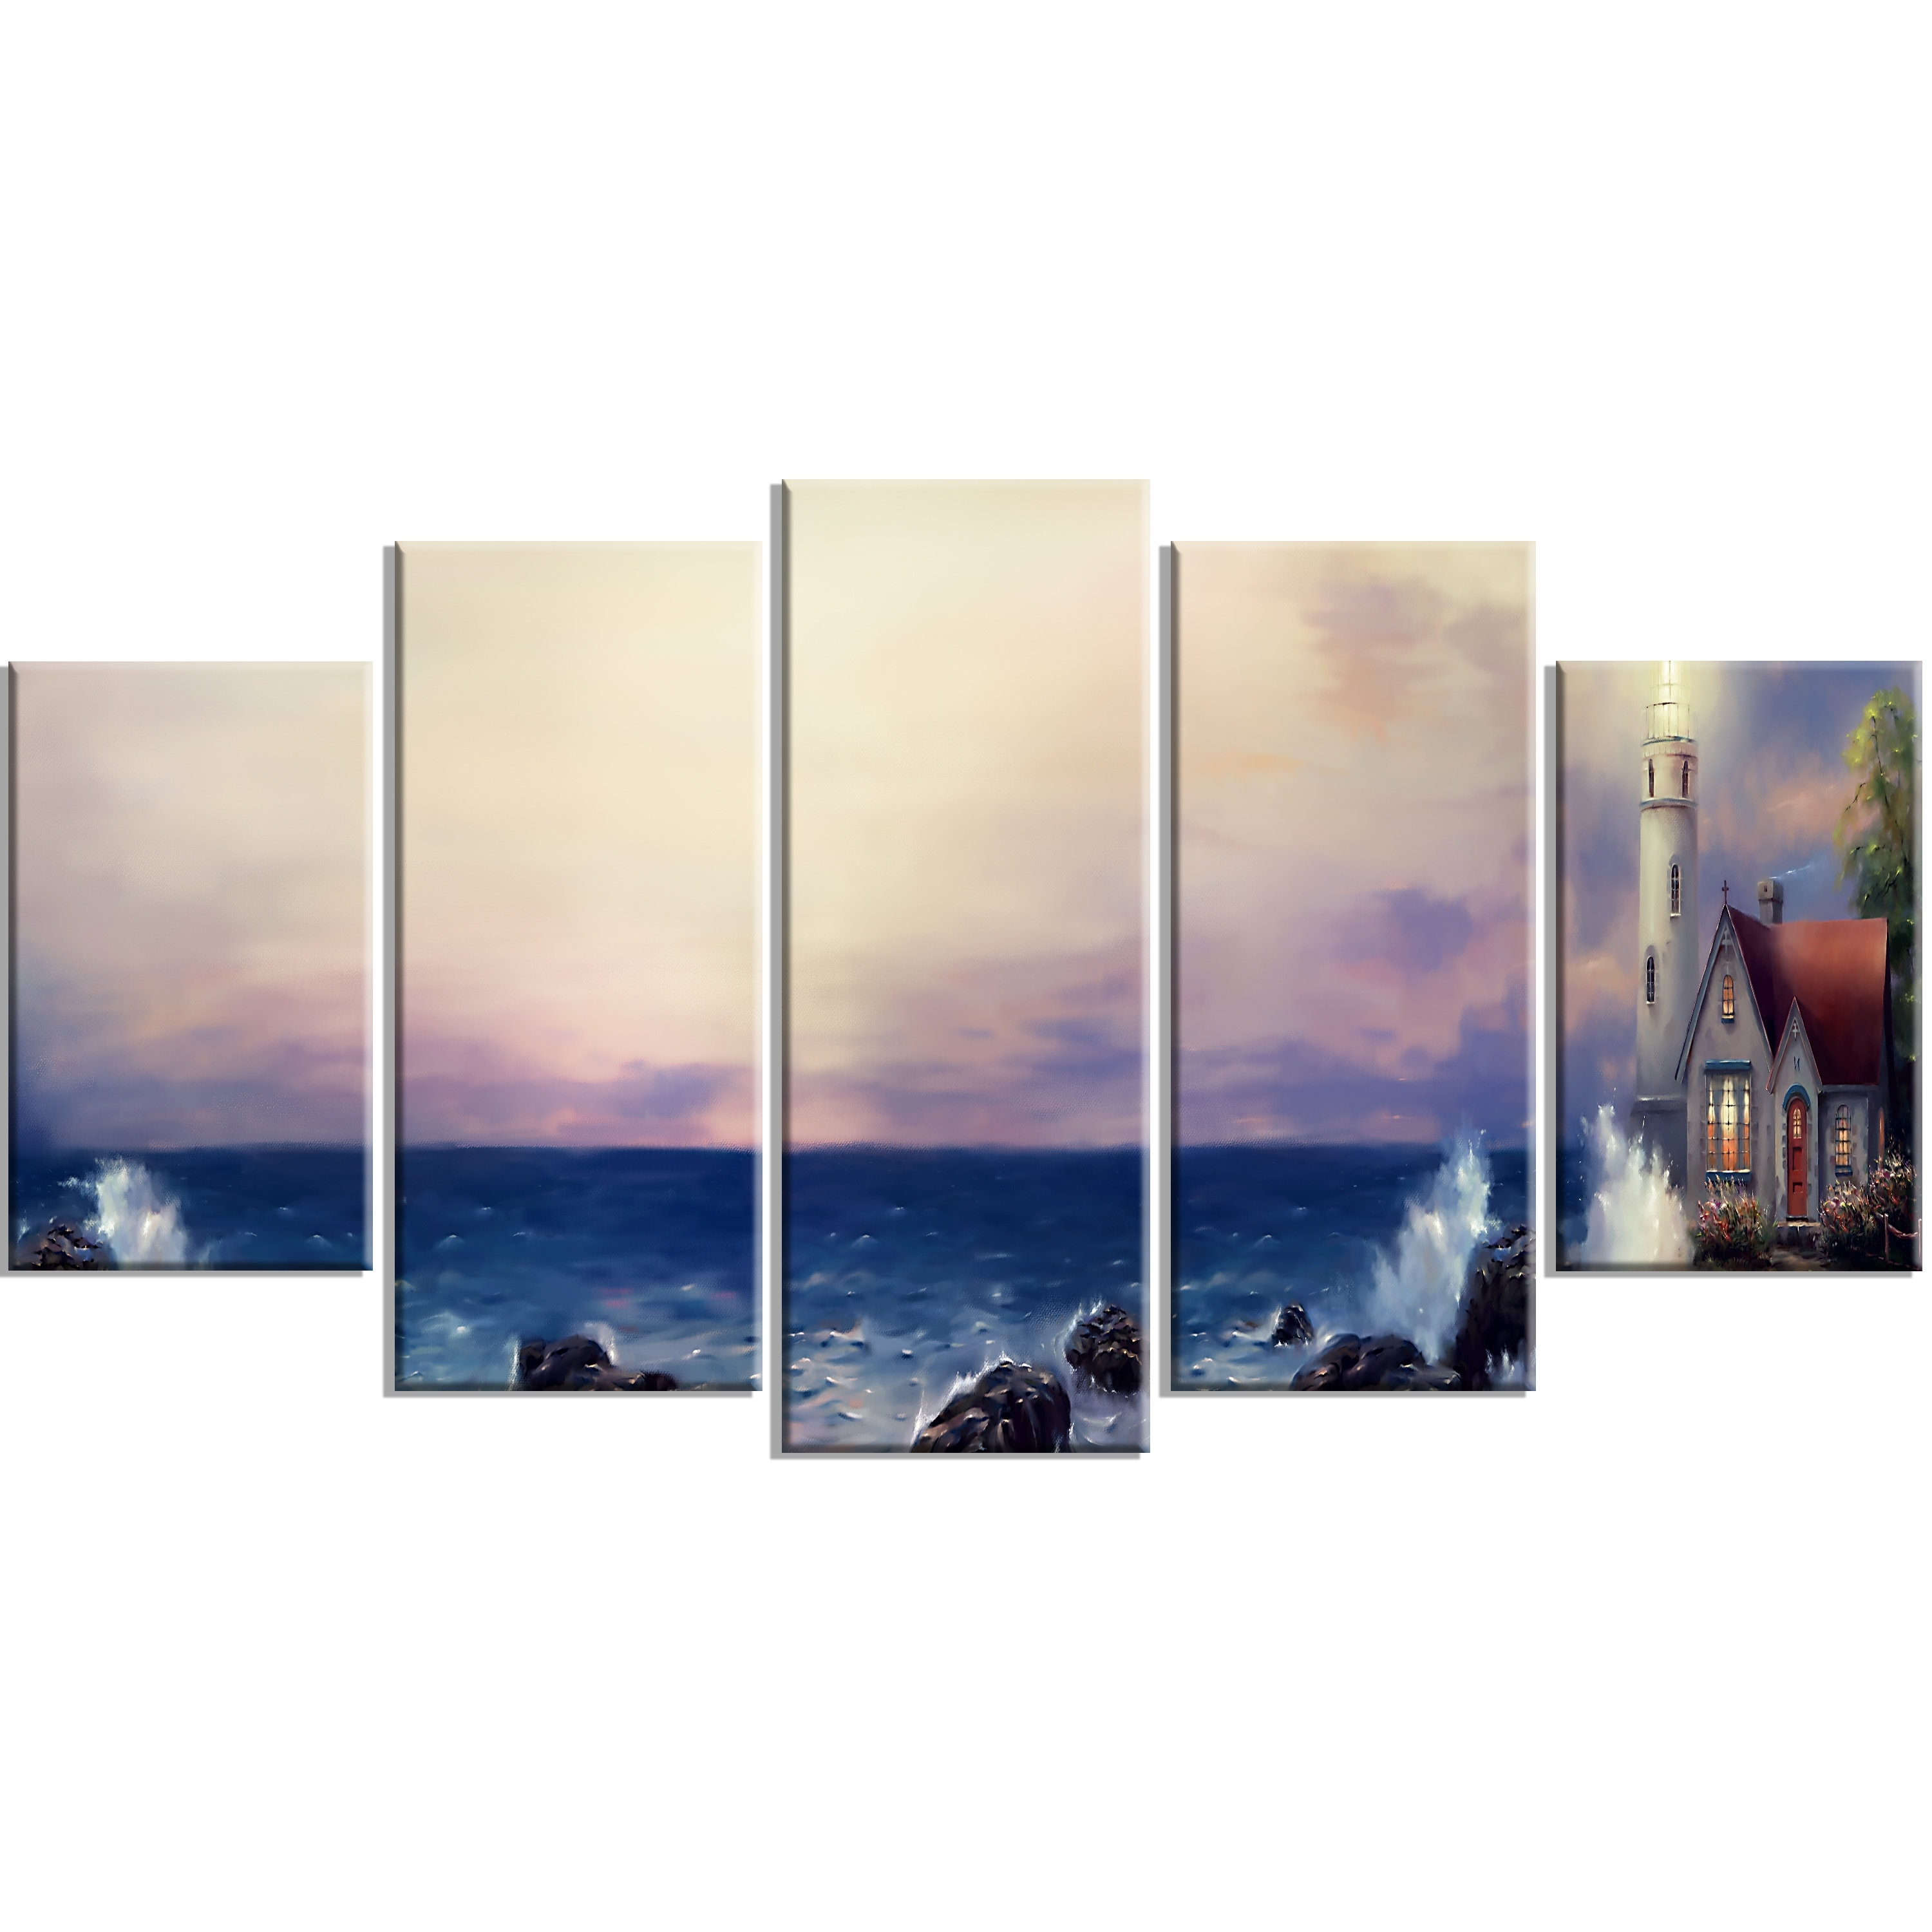 Designart 'lighthouse Sea Panoramic' 5 Piece Wall Art On Wrapped Intended For 5 Piece Wall Art Canvas (View 12 of 20)